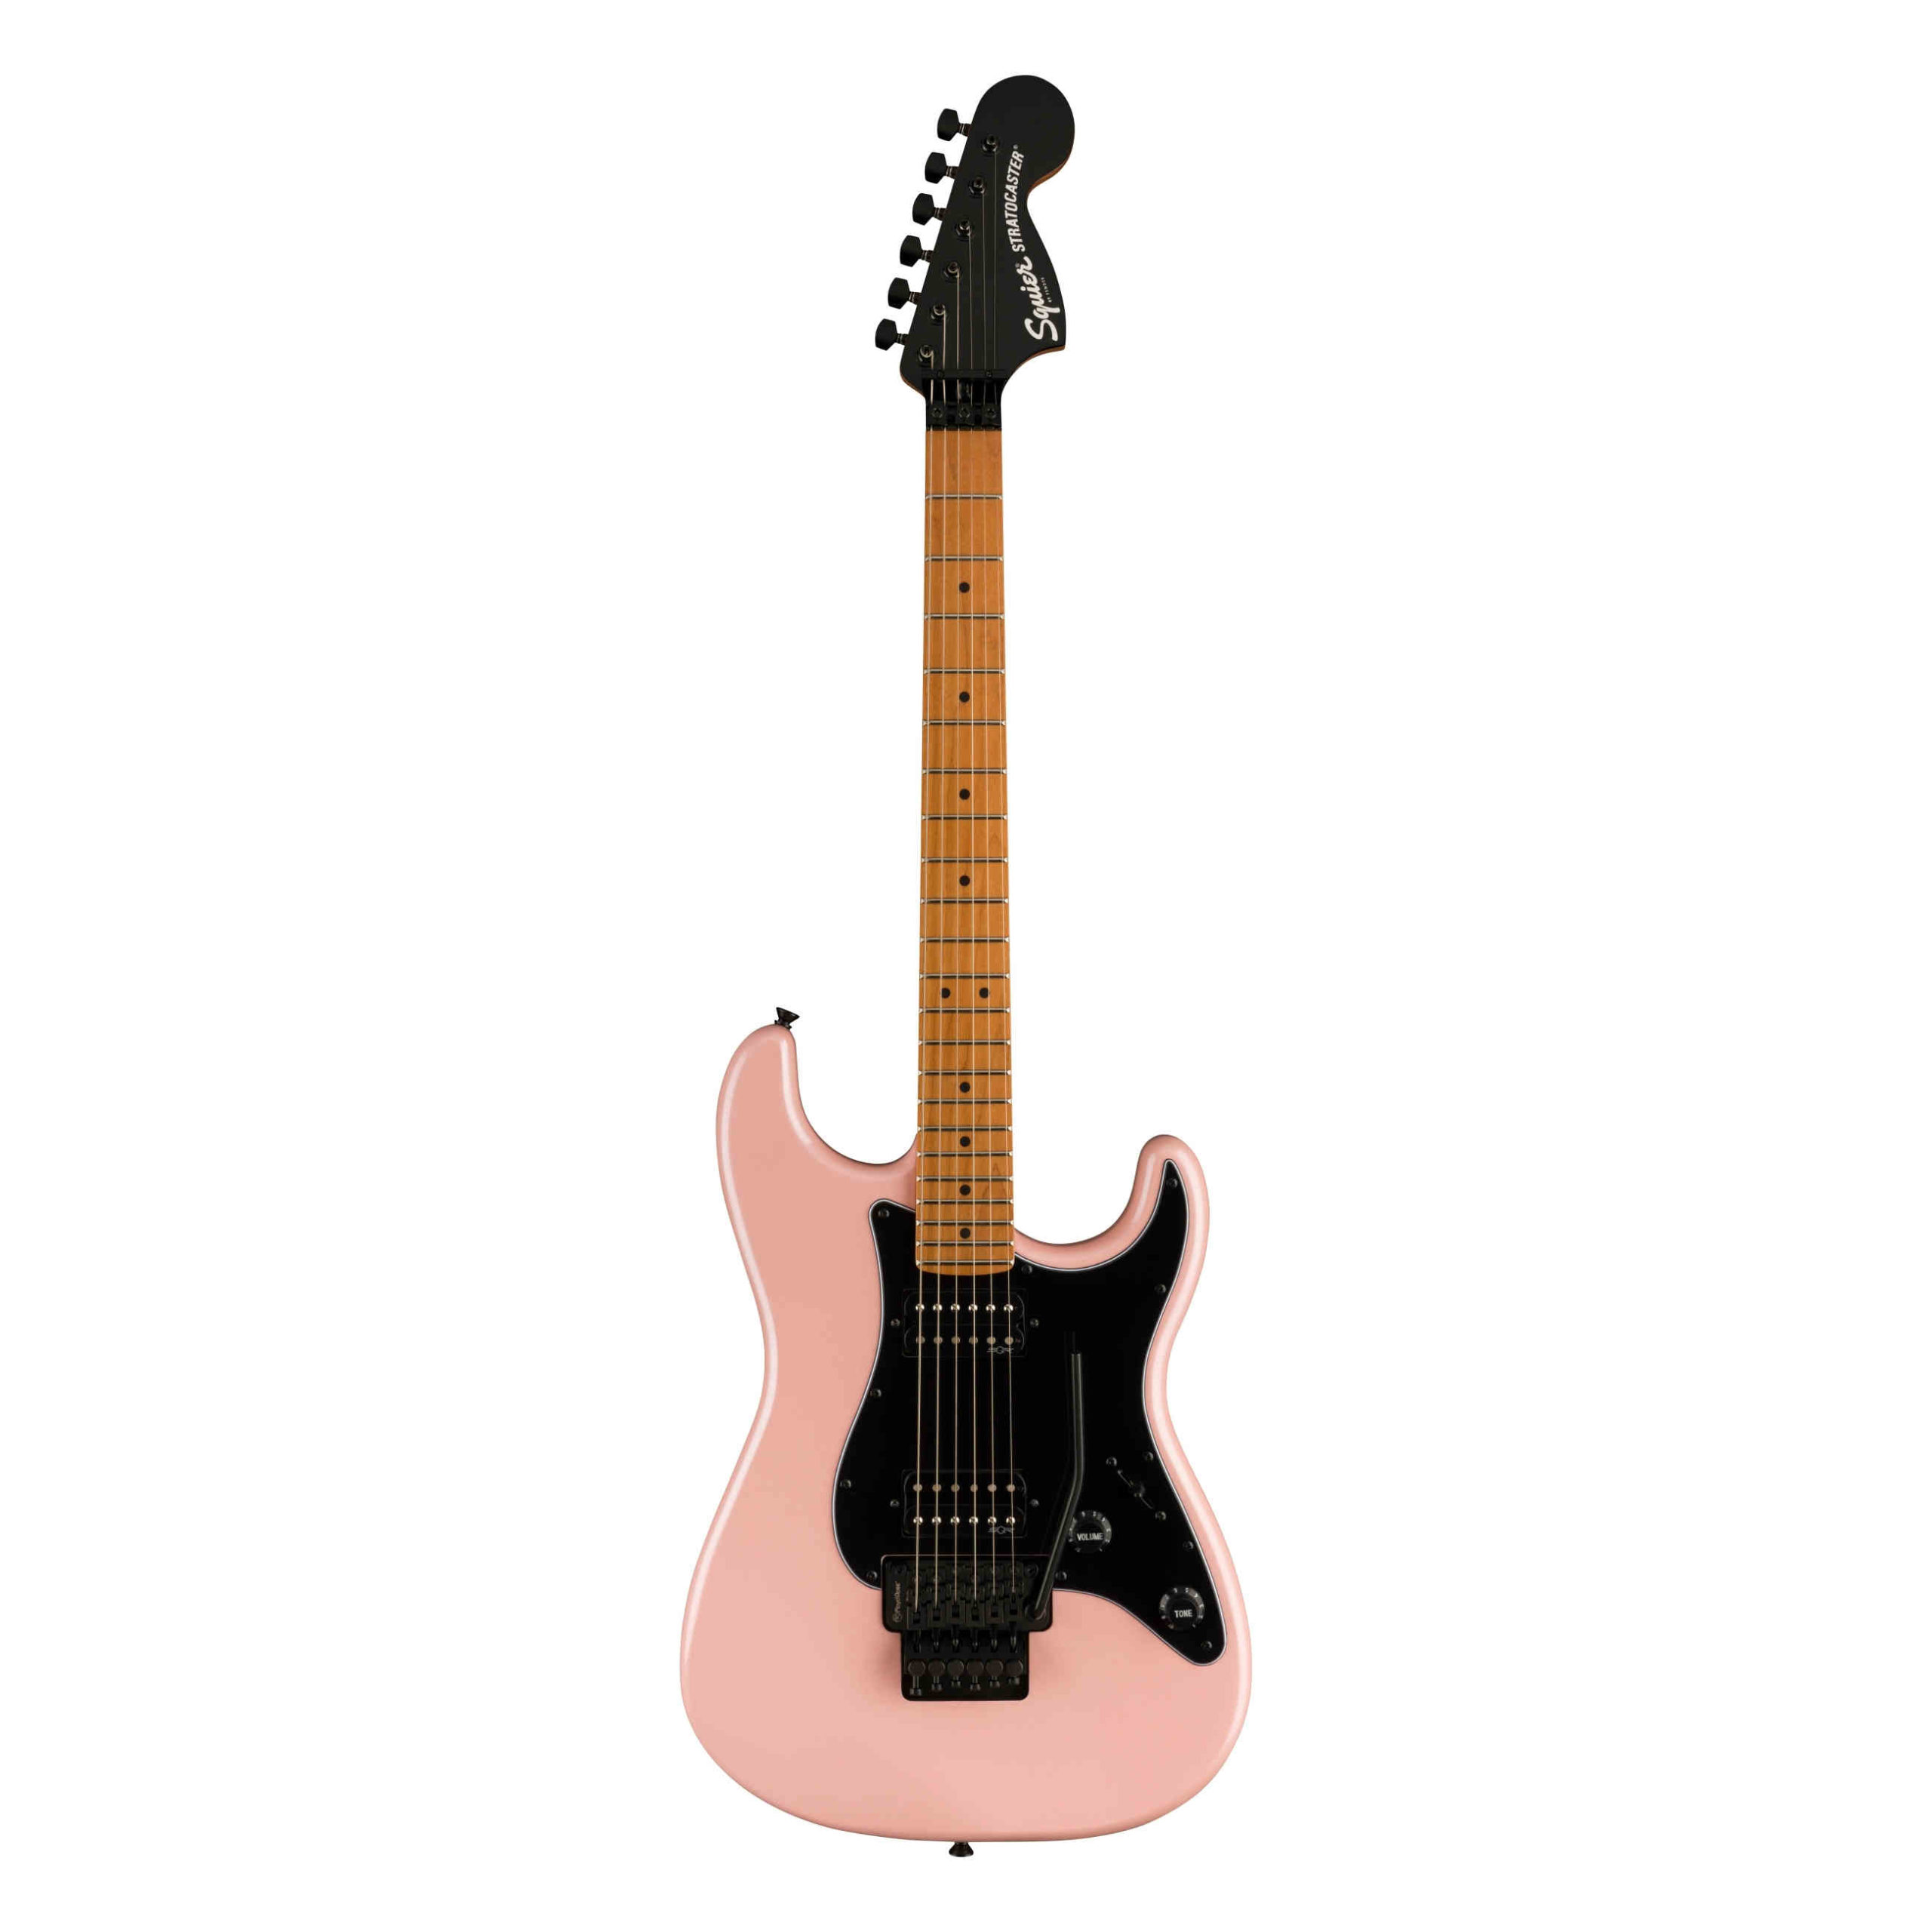 Squier Contemporary Stratocaster® Special HH FR, Roasted Maple Fingerboard, Shell Pink Pearl